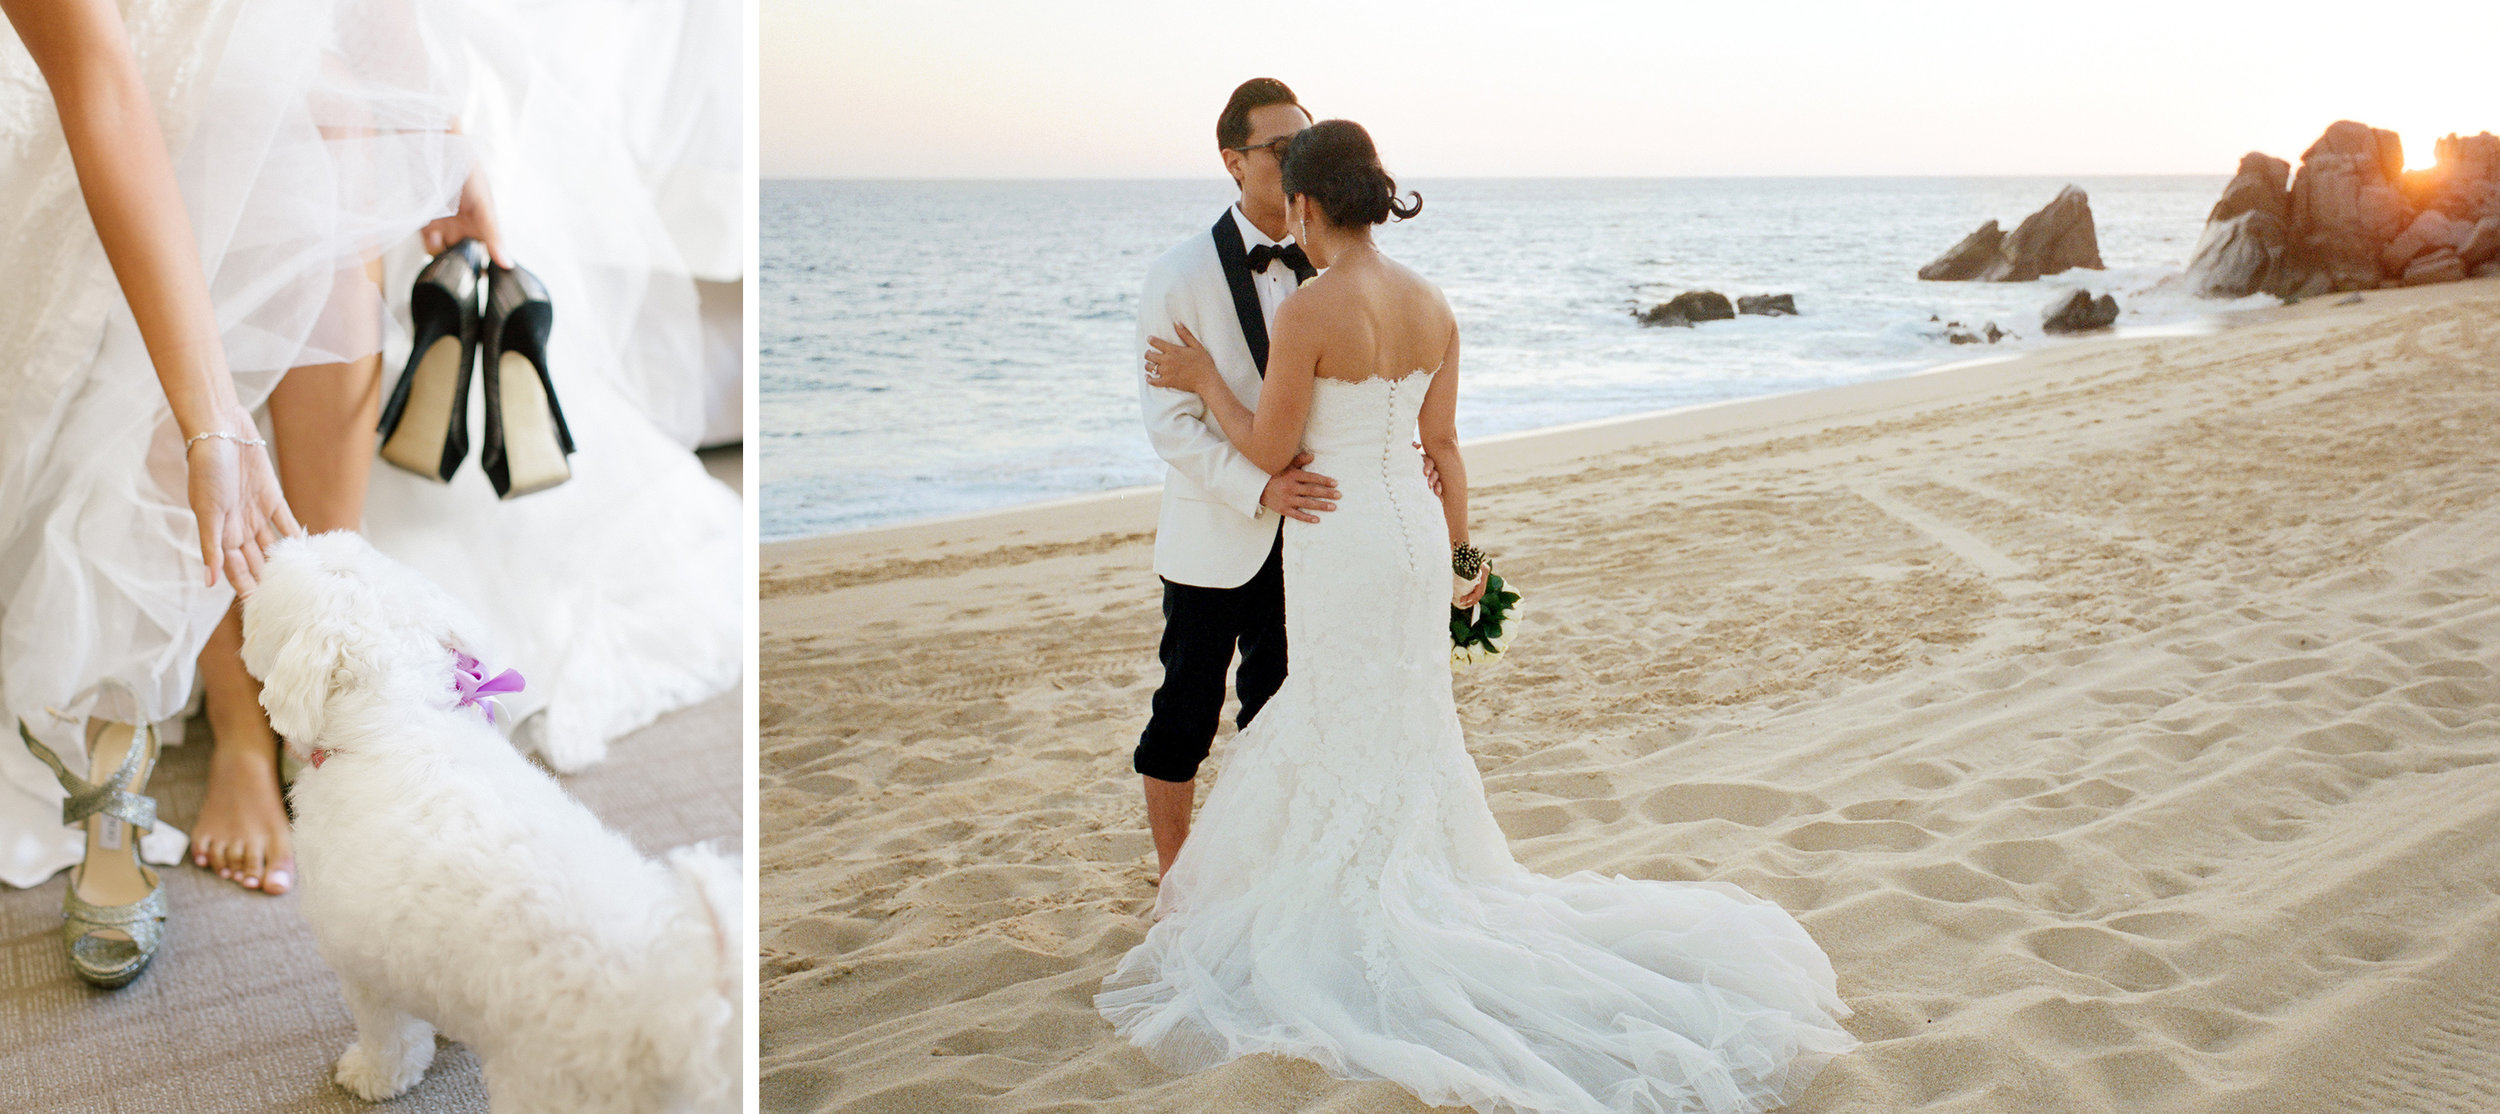 The bride gets dressed and puts on her shoes while her dog visits. Bride and groom on beach in Cabo at sunset.